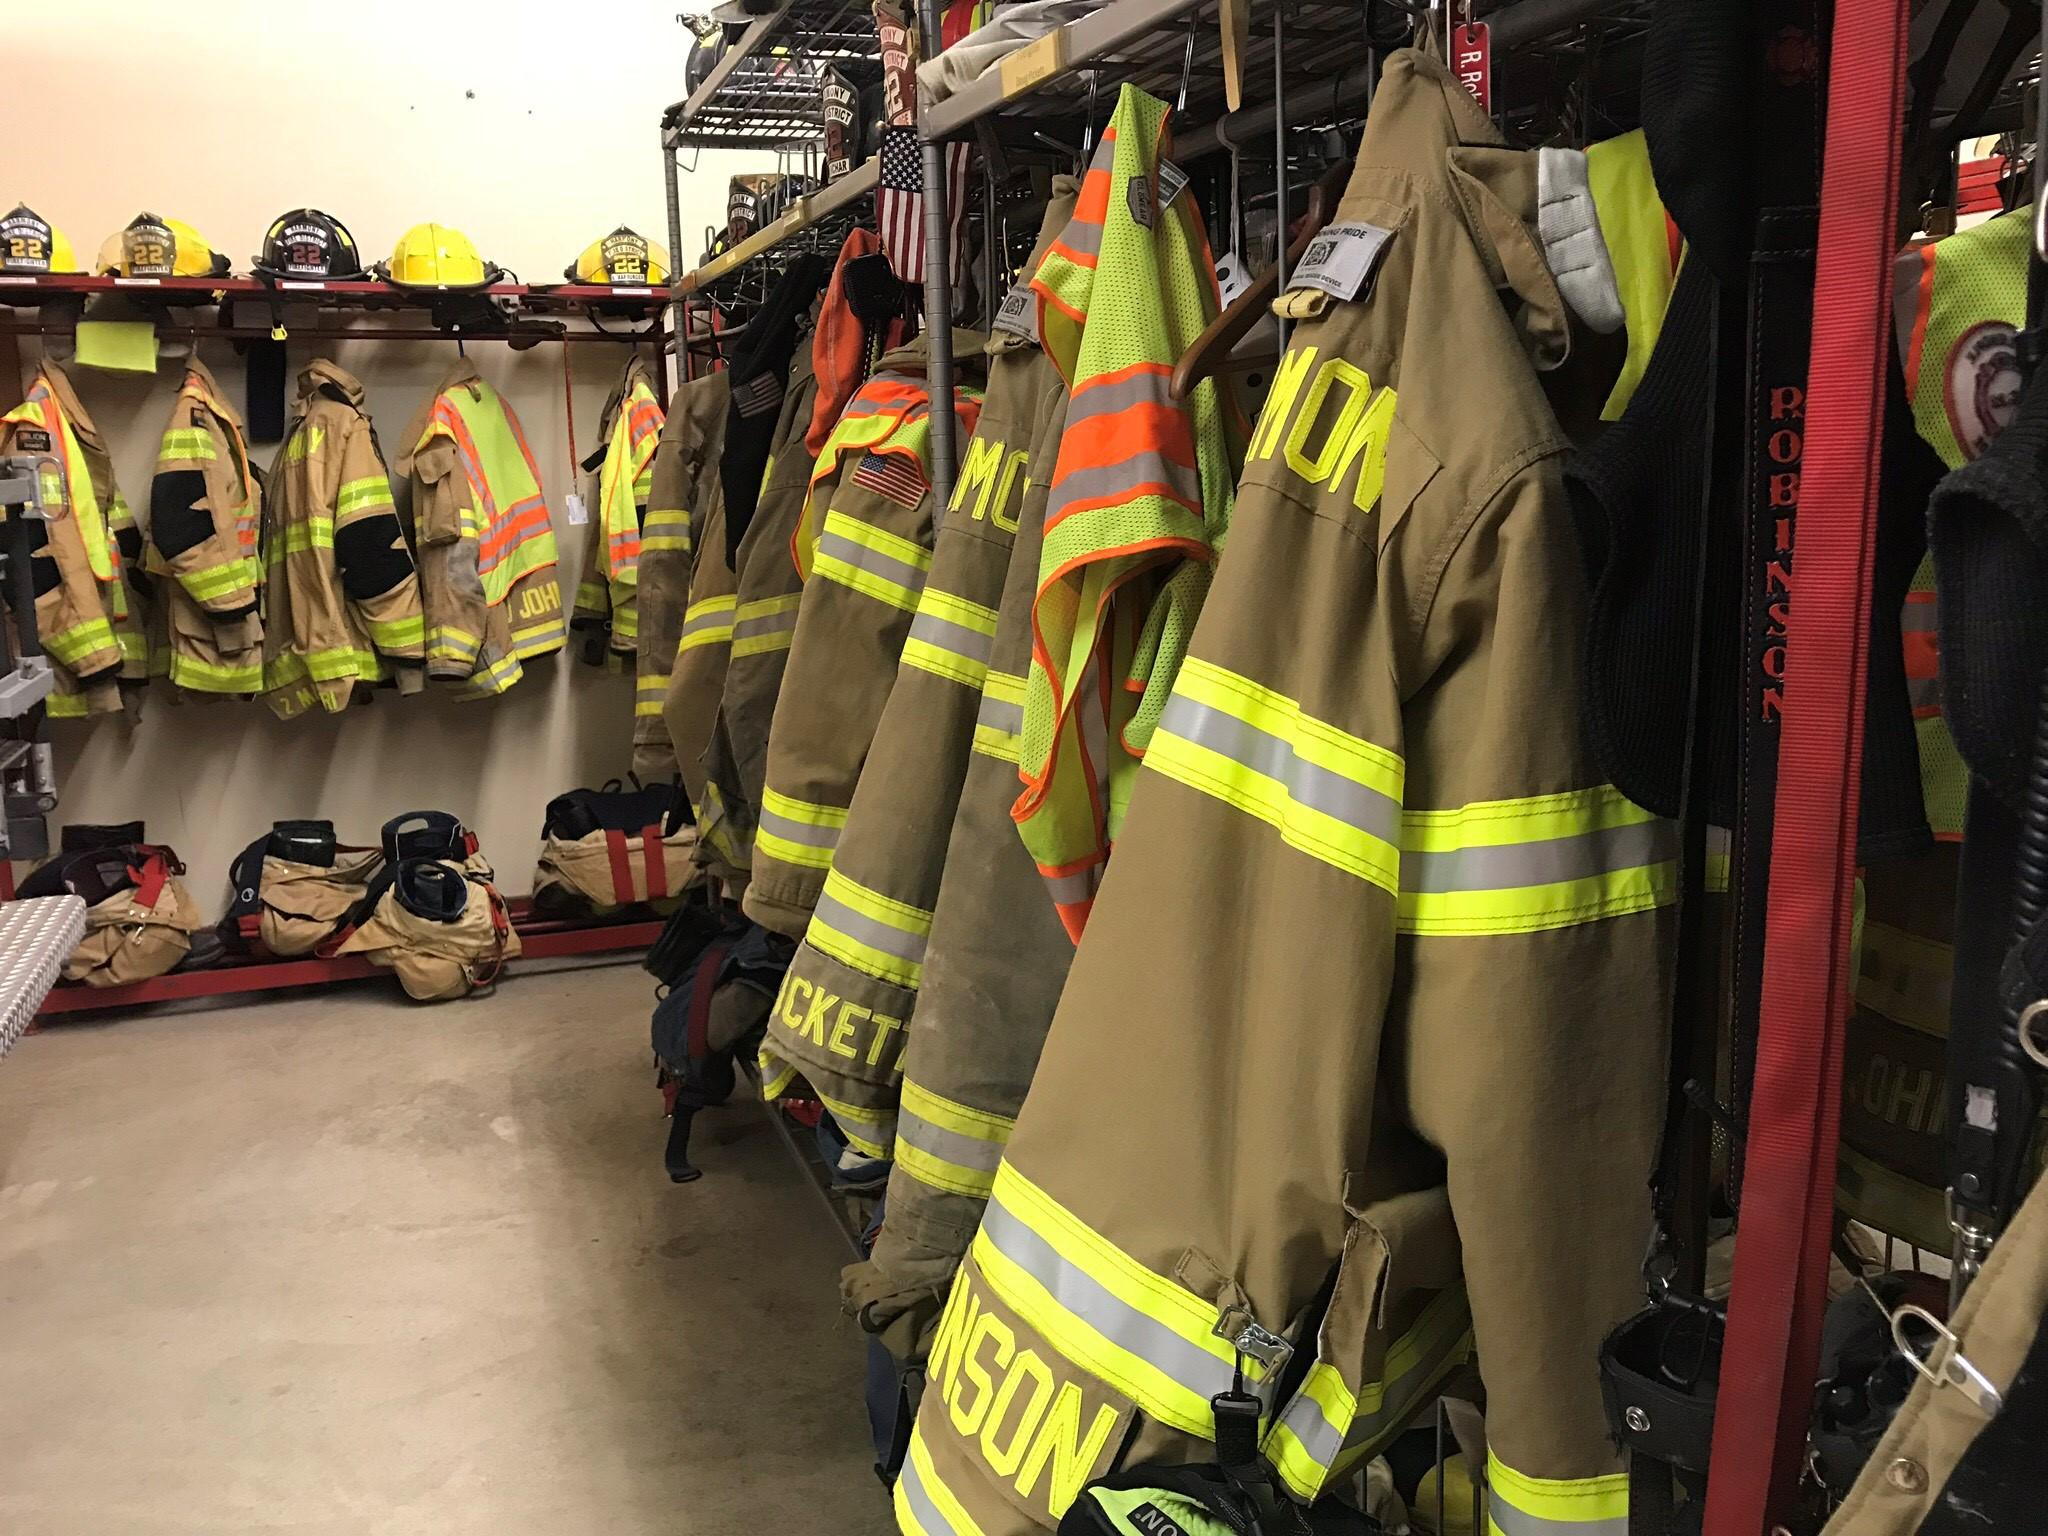 740d51f9 Bunker gear hangs in the garage of the Harmony Fire District fire house in  Harmony, Pa.